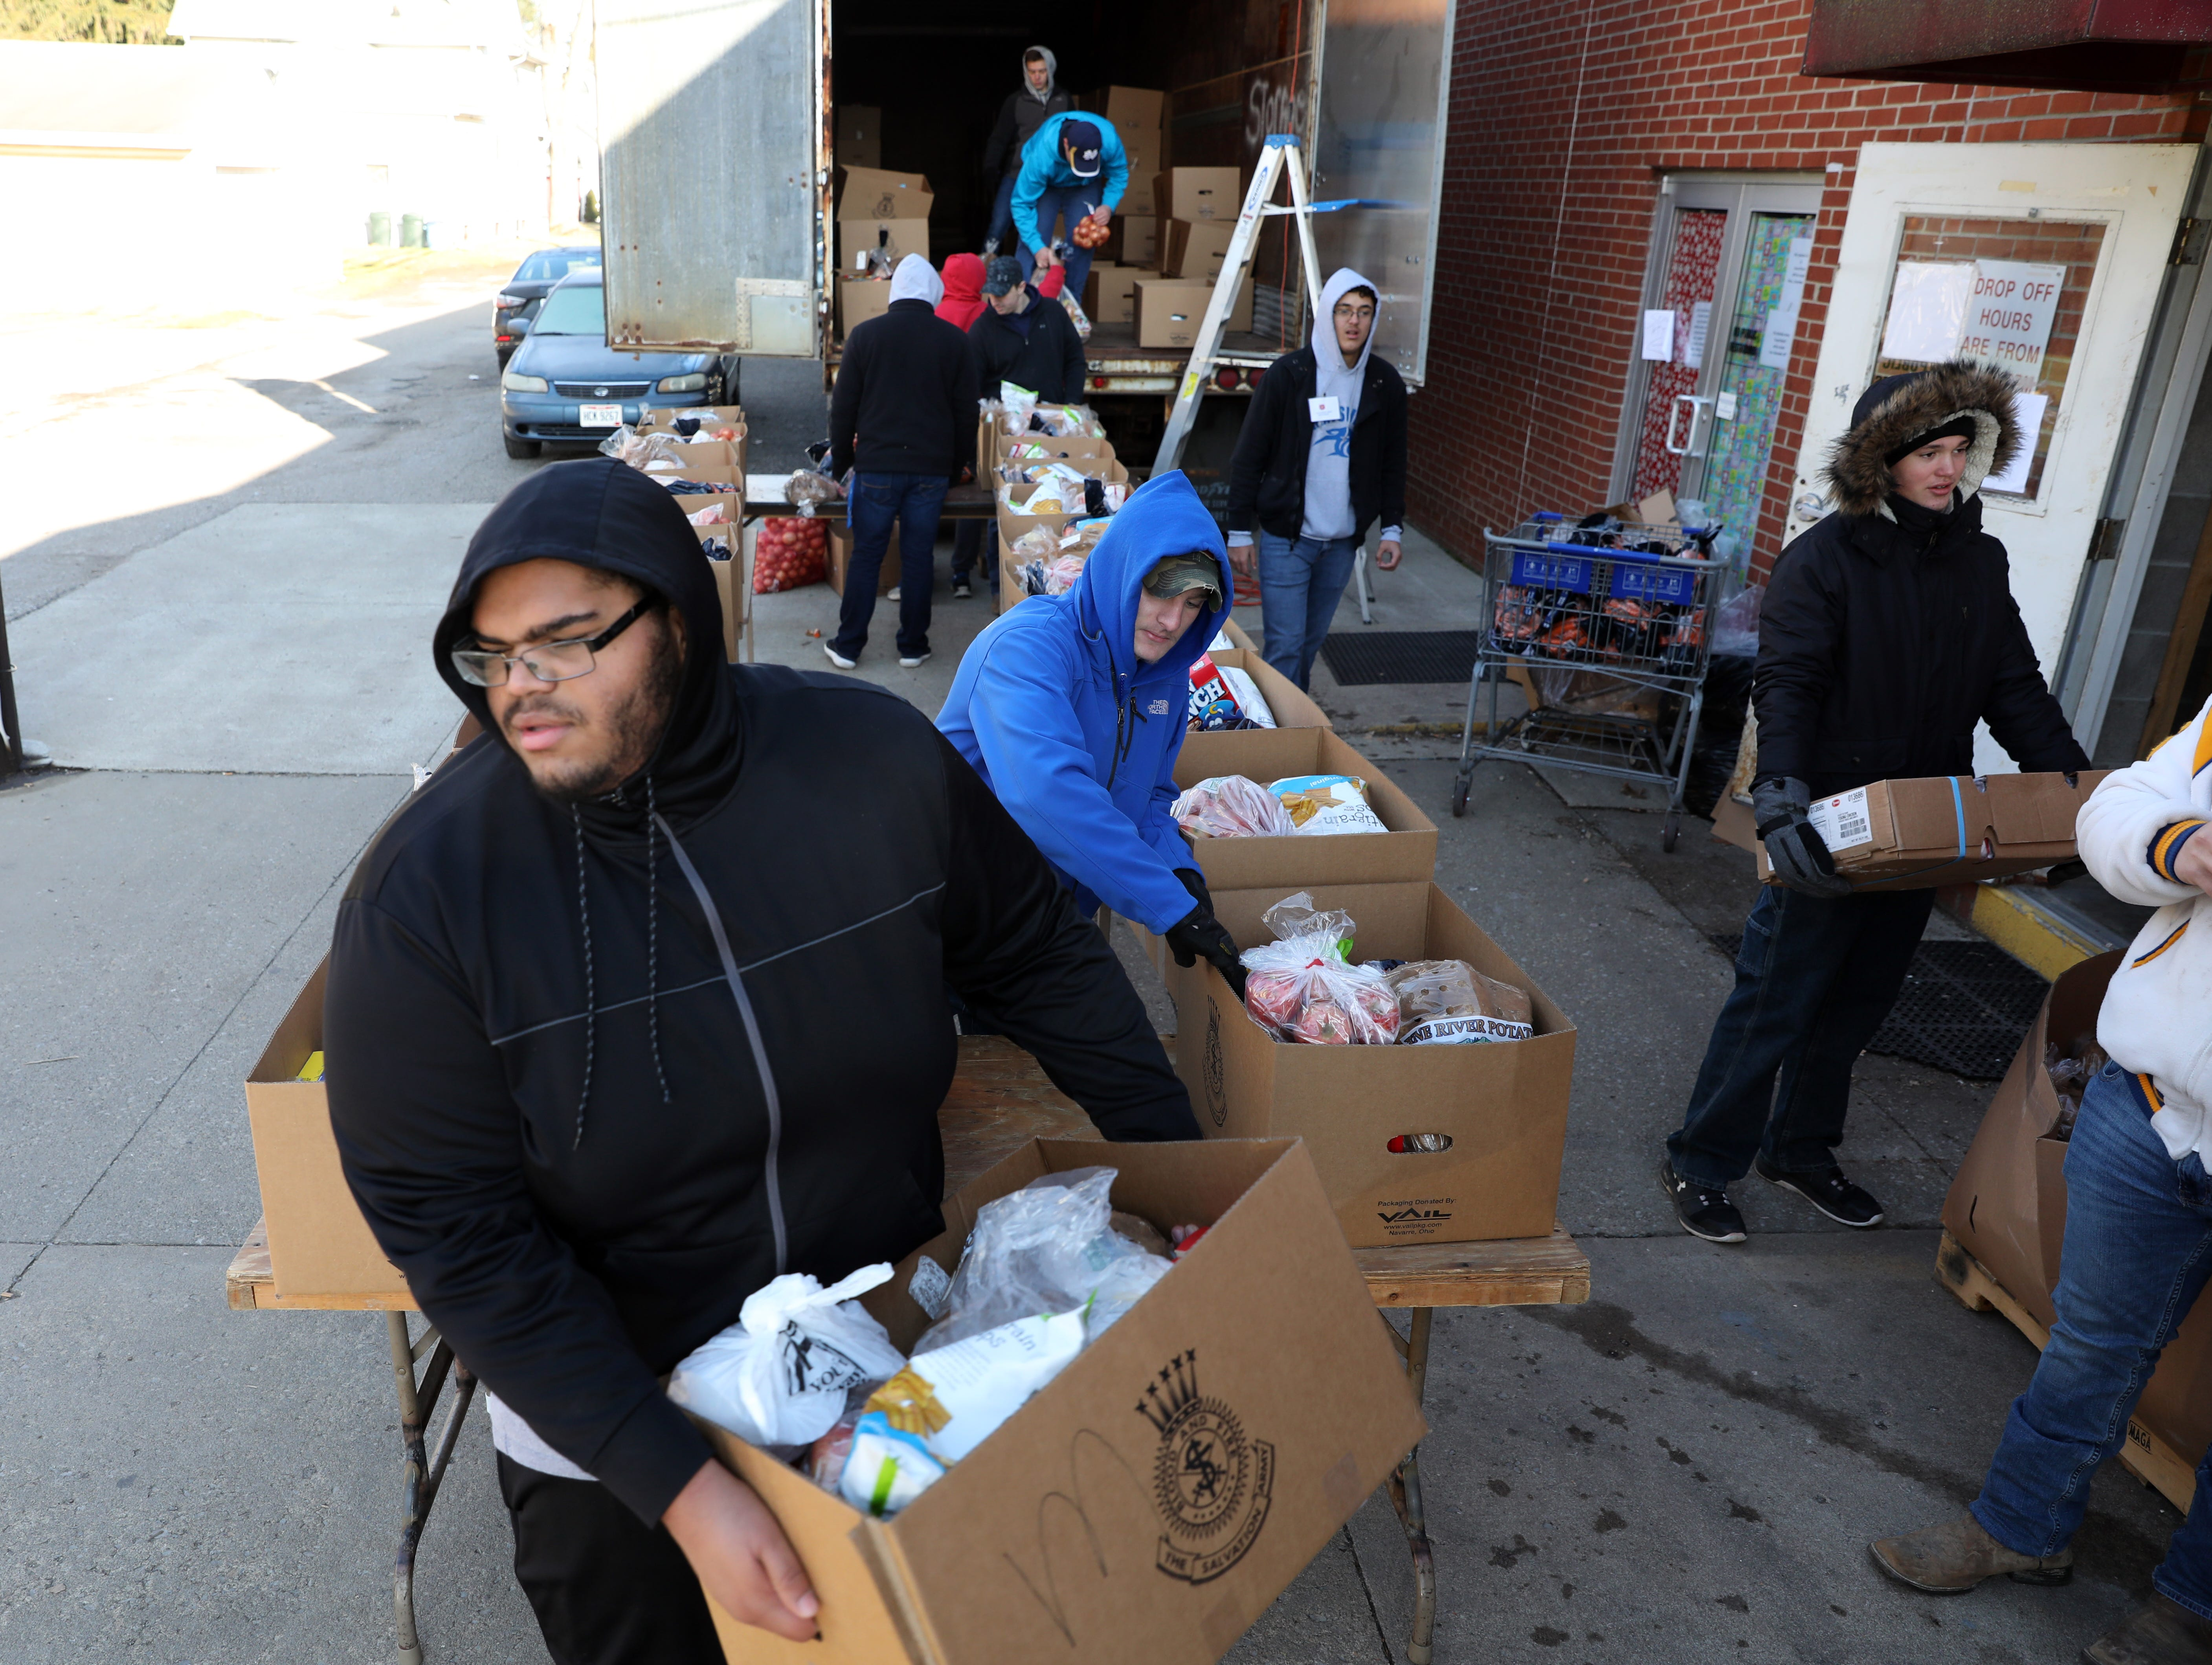 Maysville High School football player Jakob Plummer carries a box of food while volunteering at the Salvation Army on Tuesday.